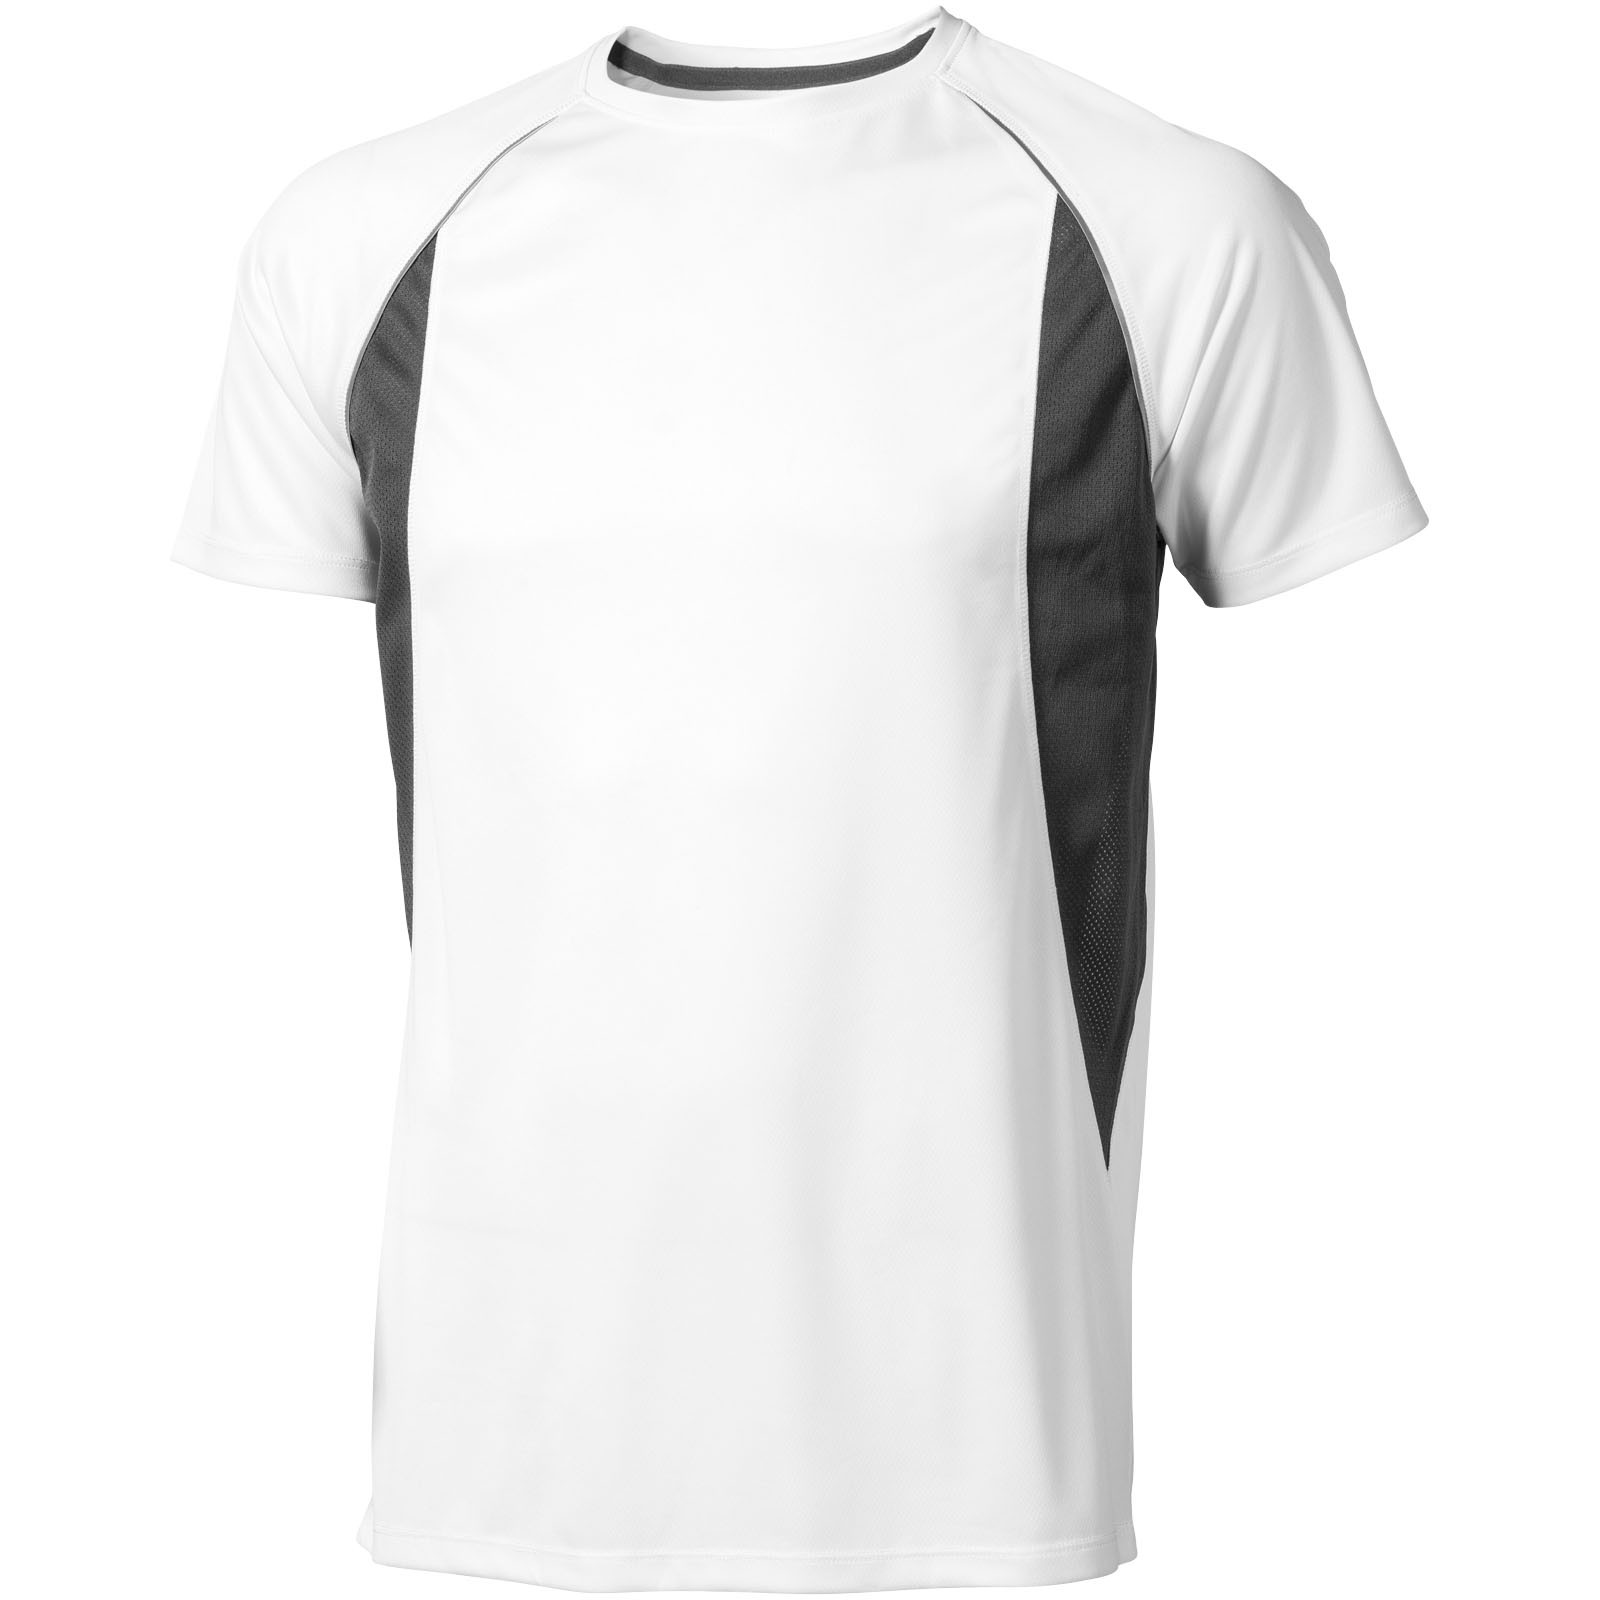 Quebec short sleeve men's cool fit t-shirt - White / Anthracite / XS